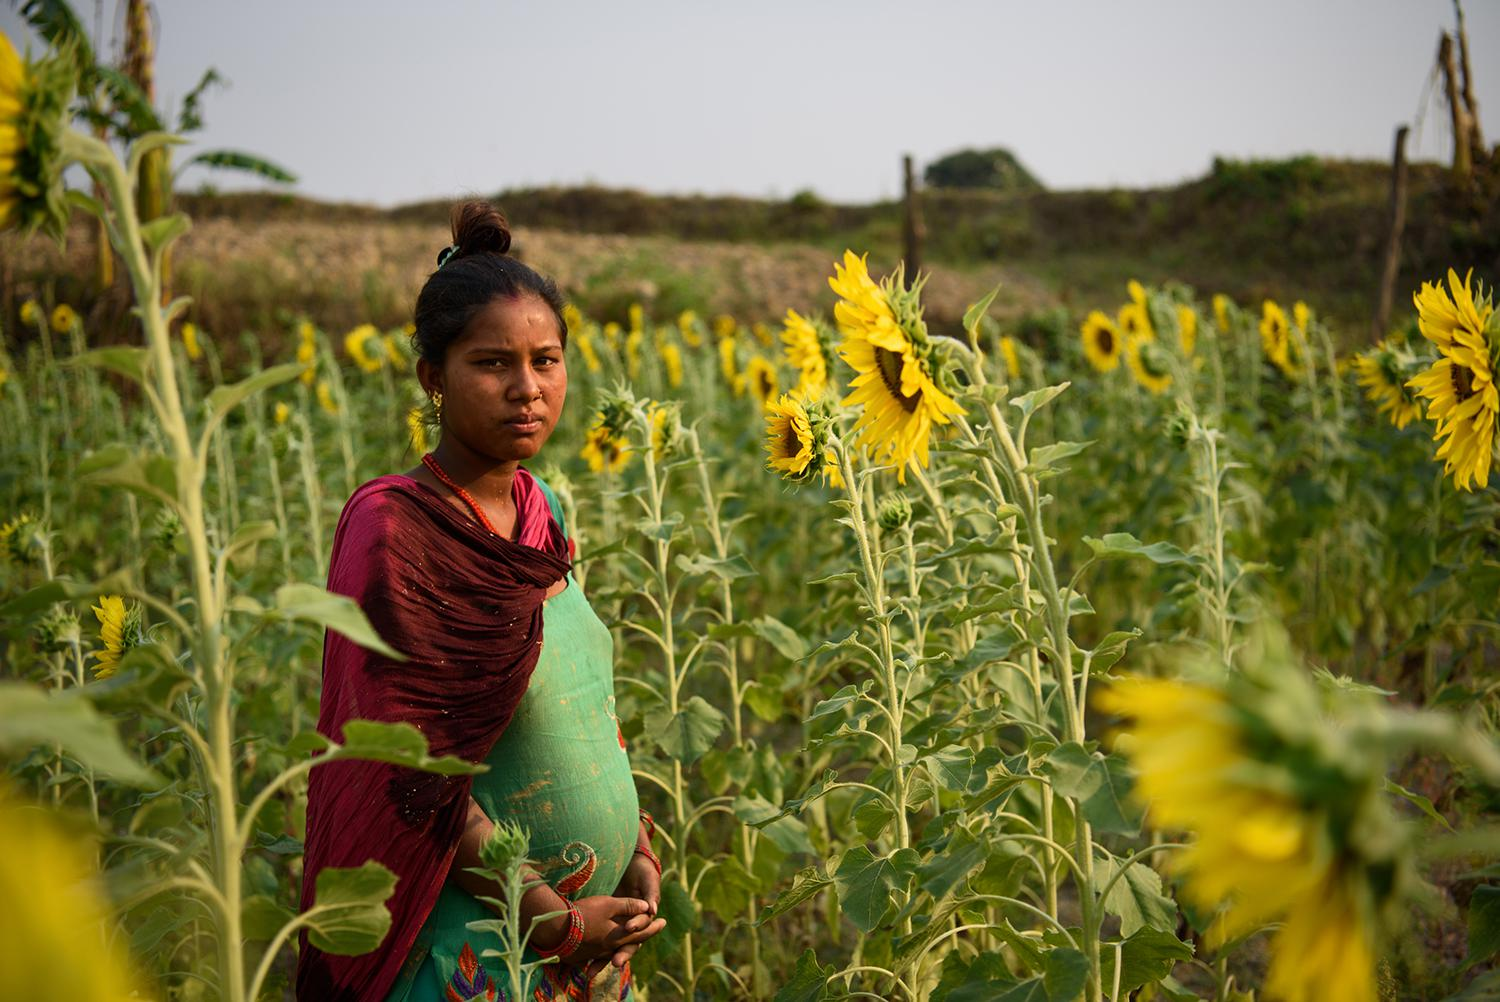 Sharmila G., 14, eloped at age 12 and married an 18-year-old man. At the time this picture was taken she was seven months pregnant. She said that when rumors spread in her village about her relationship with her then-boyfriend, her parents tried to separa